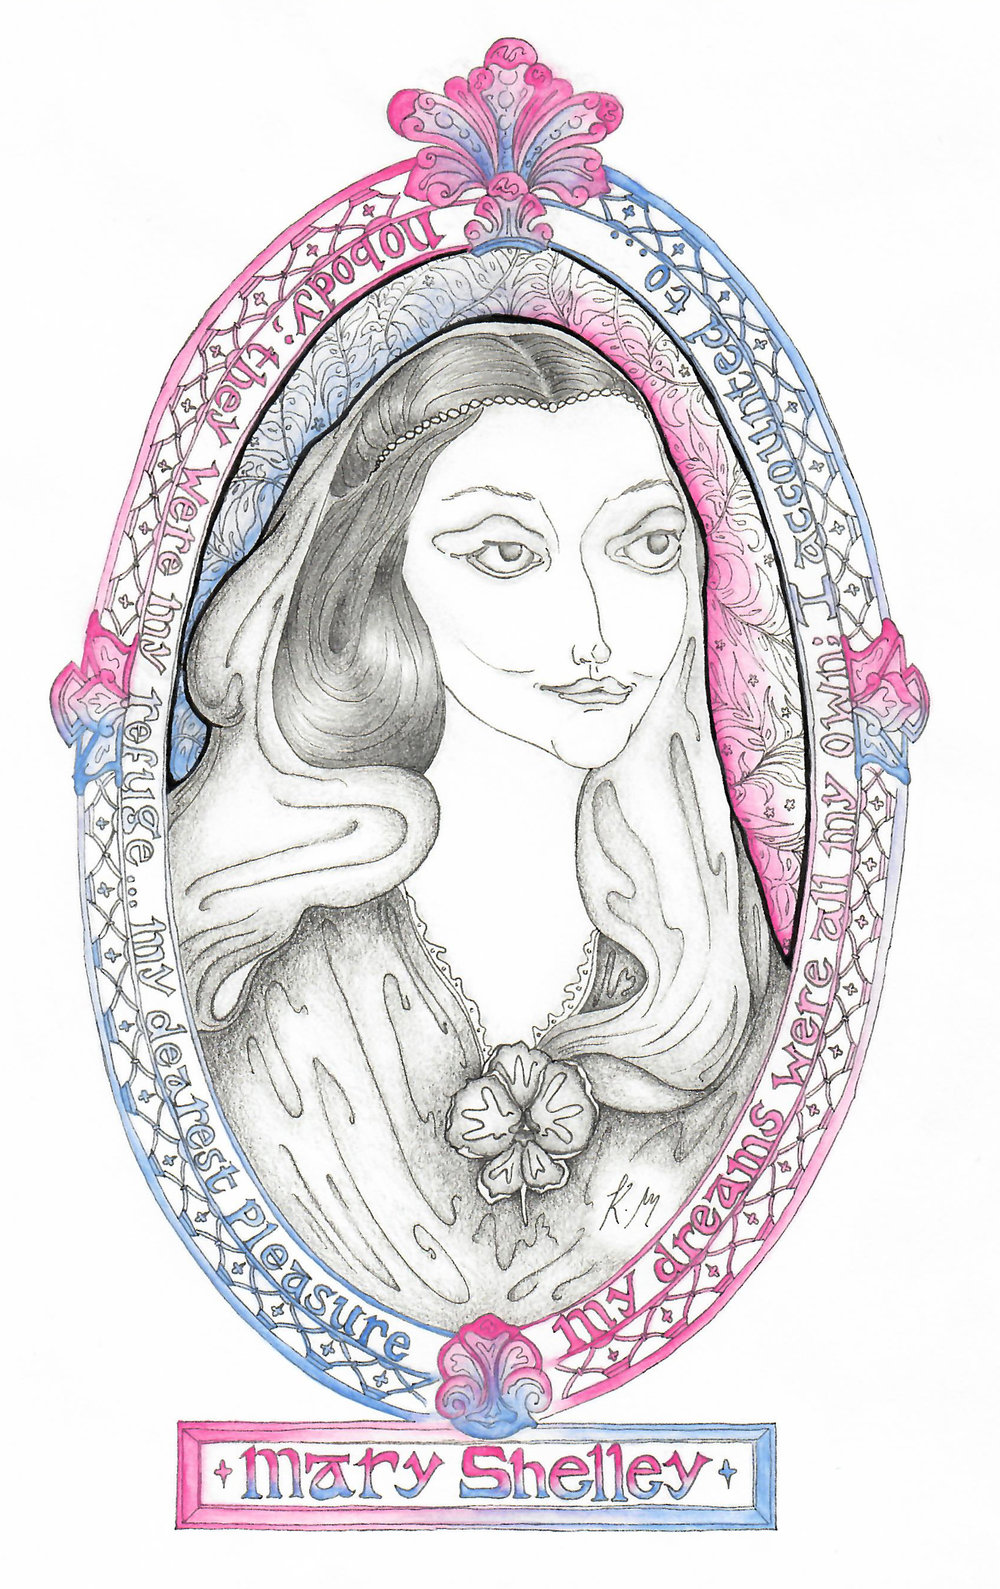 Mary Shelley - Mary Shelley available as a print, notebook or on a special soy wax hand poured candle.